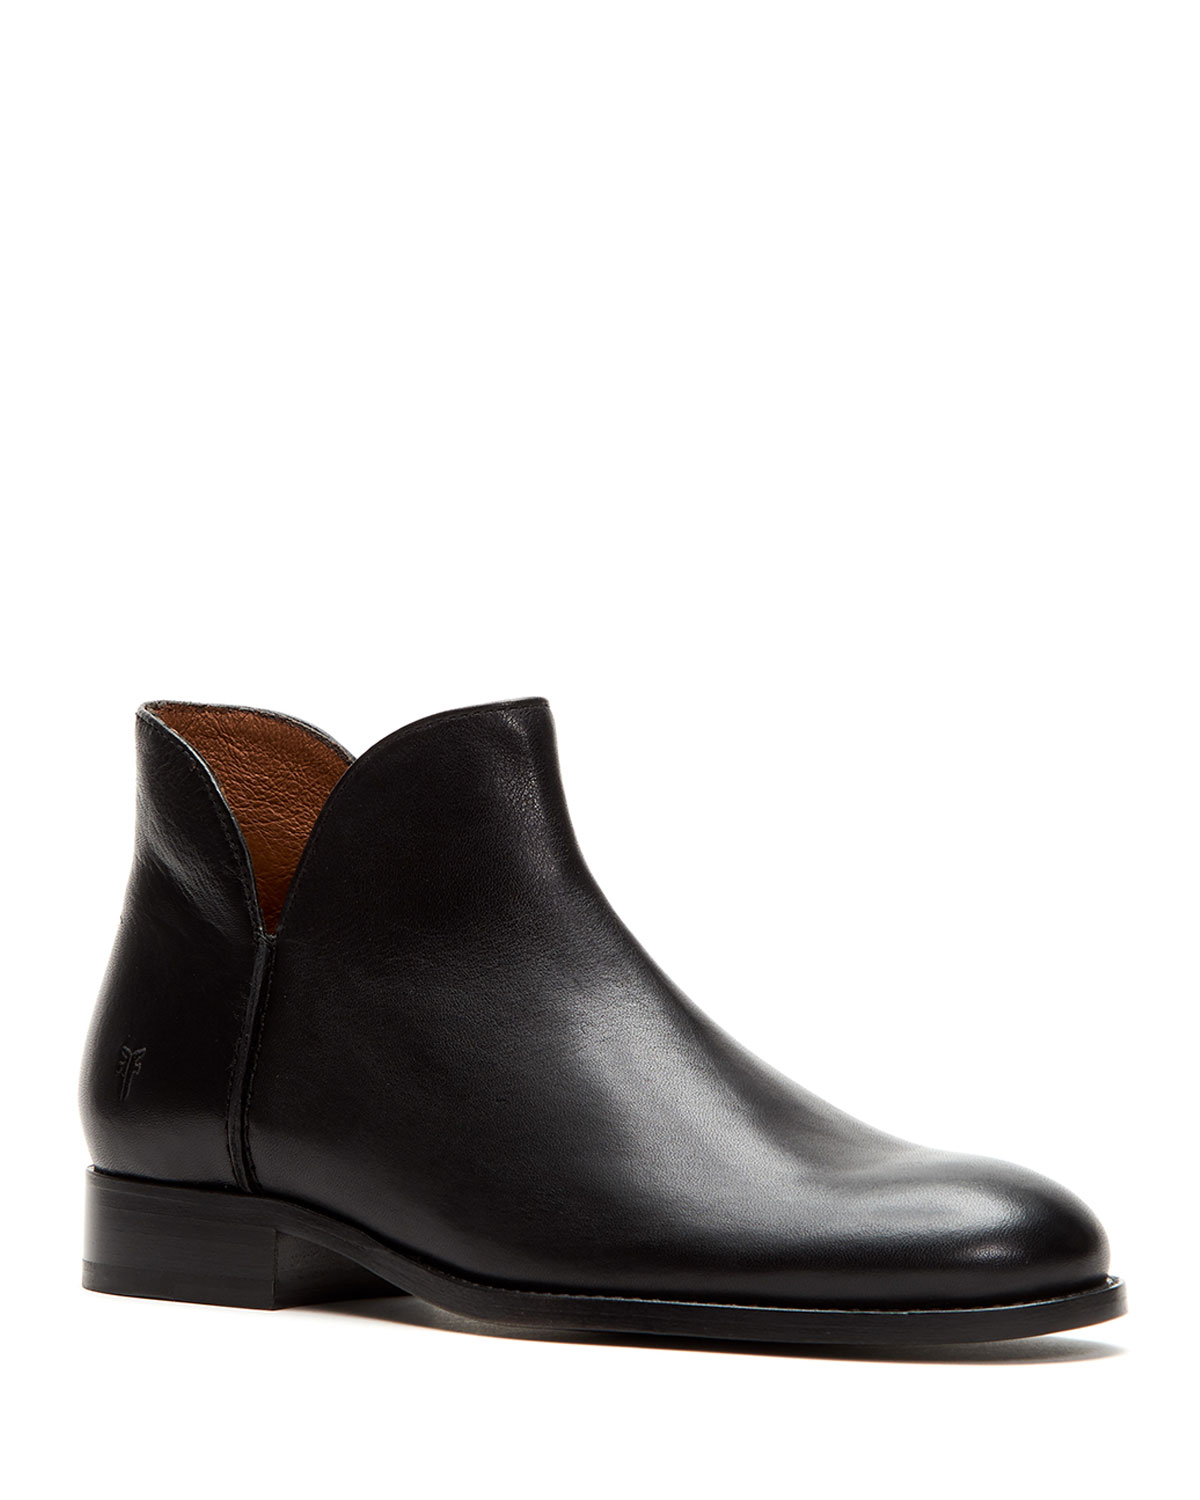 Melissa Leather Ankle Booties